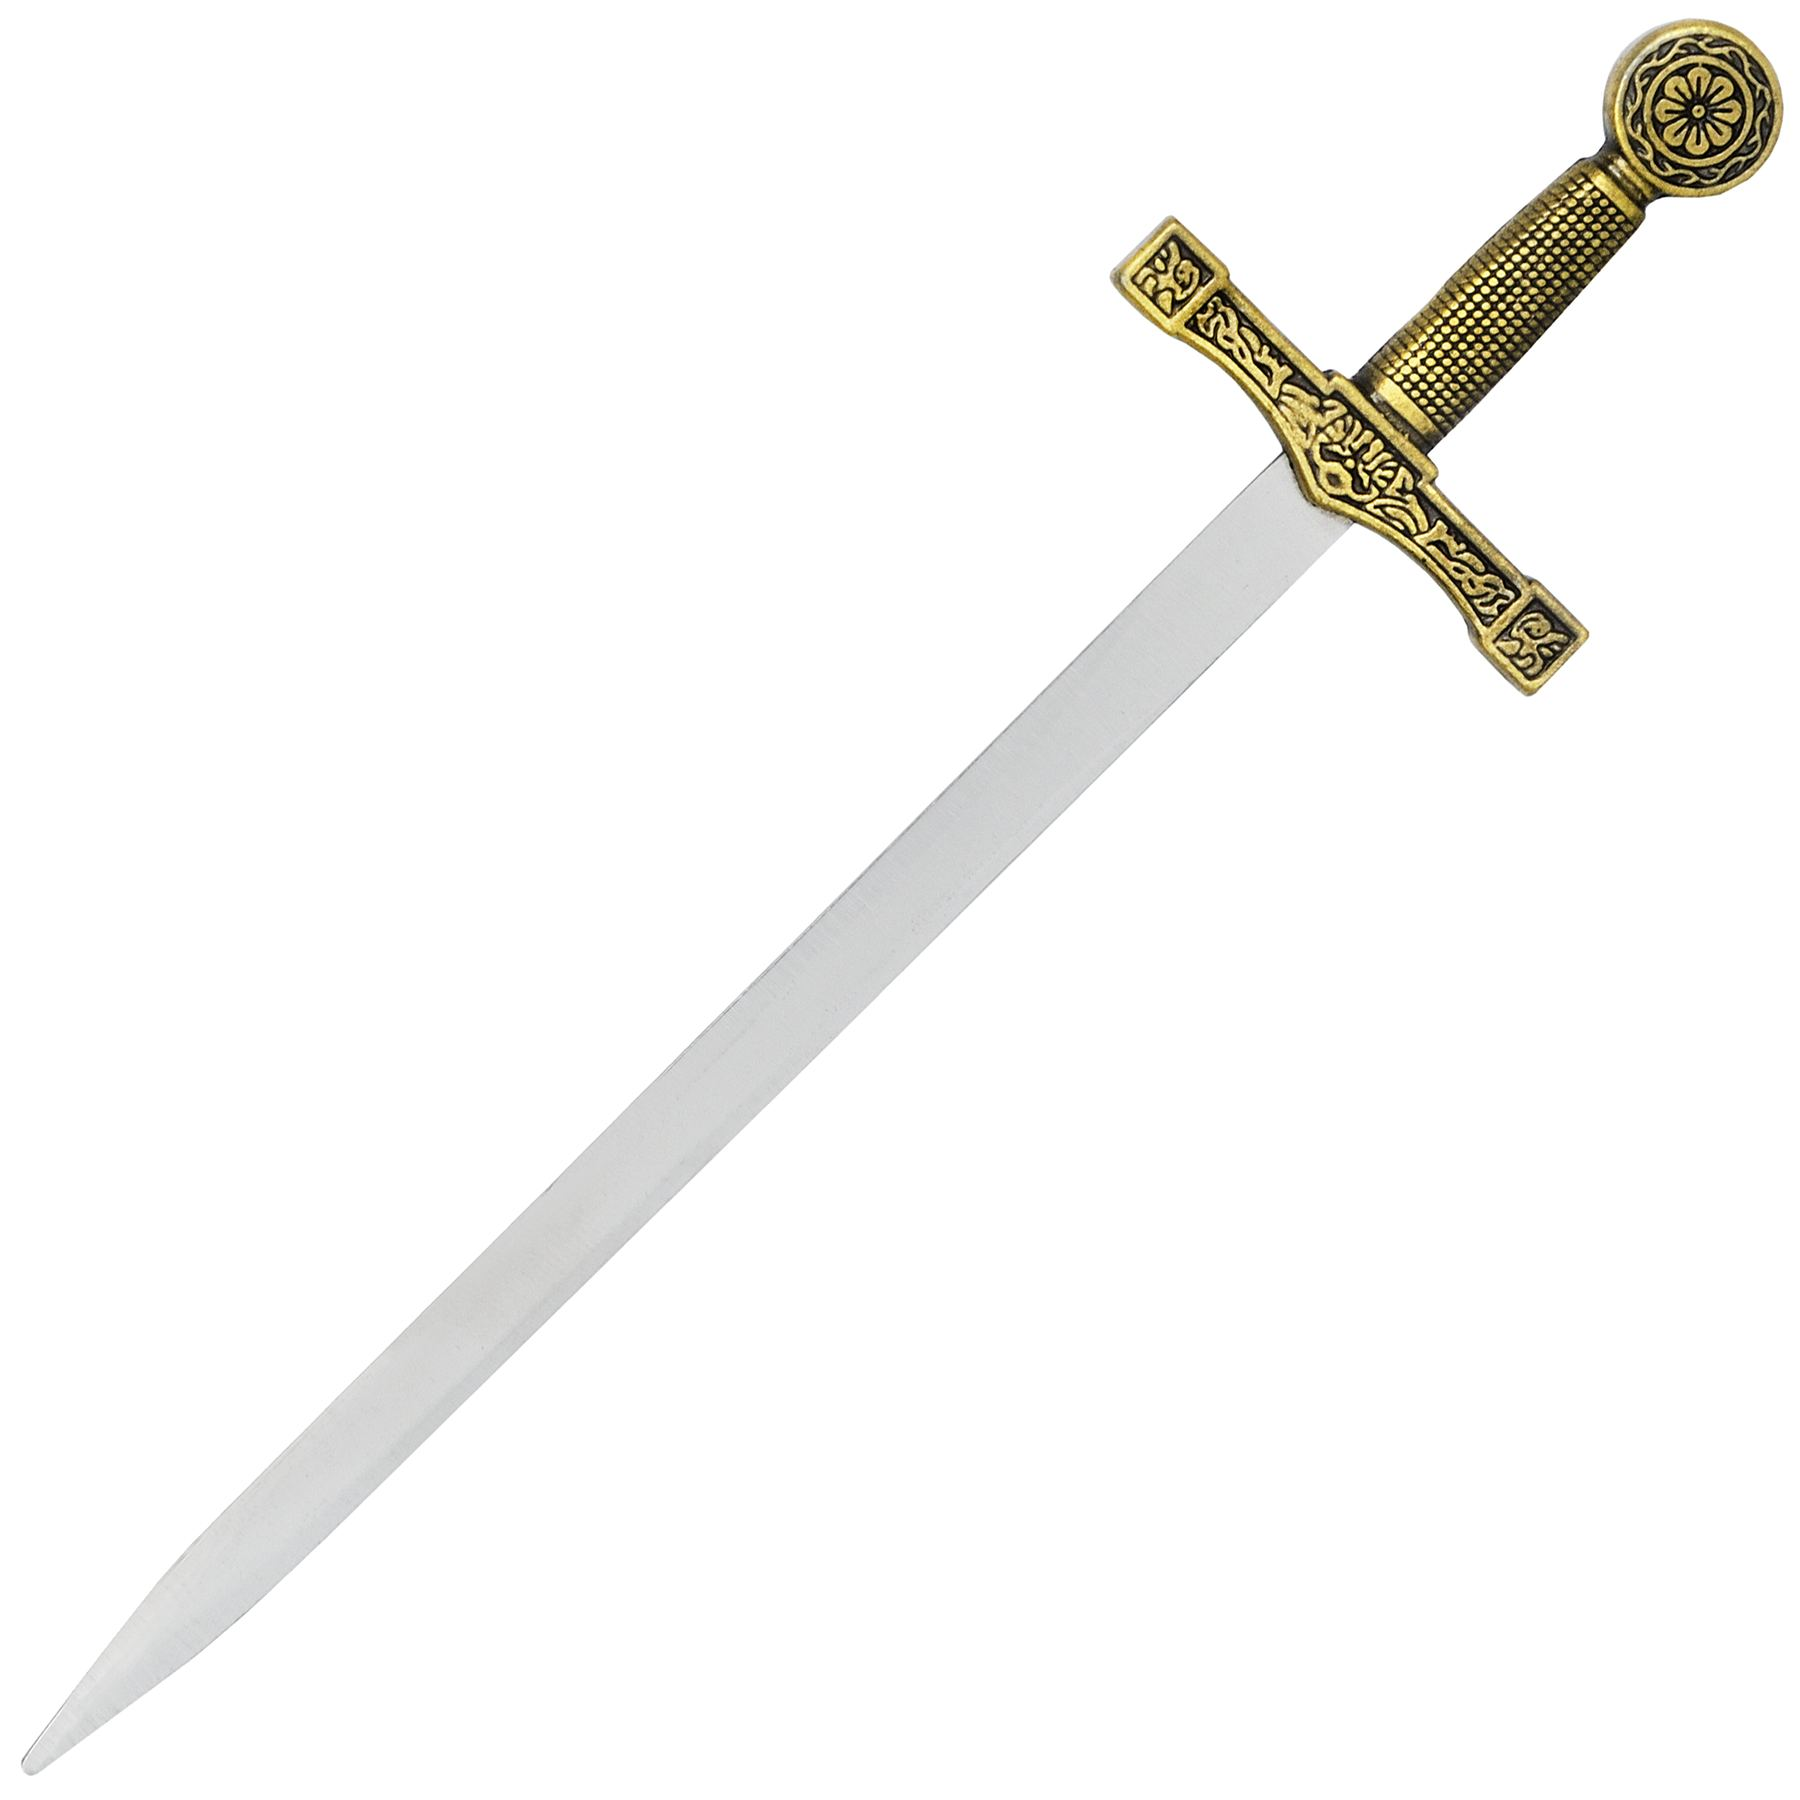 KING ARTHUR 39 S EXCALIBUR LETTER OPENER From Hill Interiors